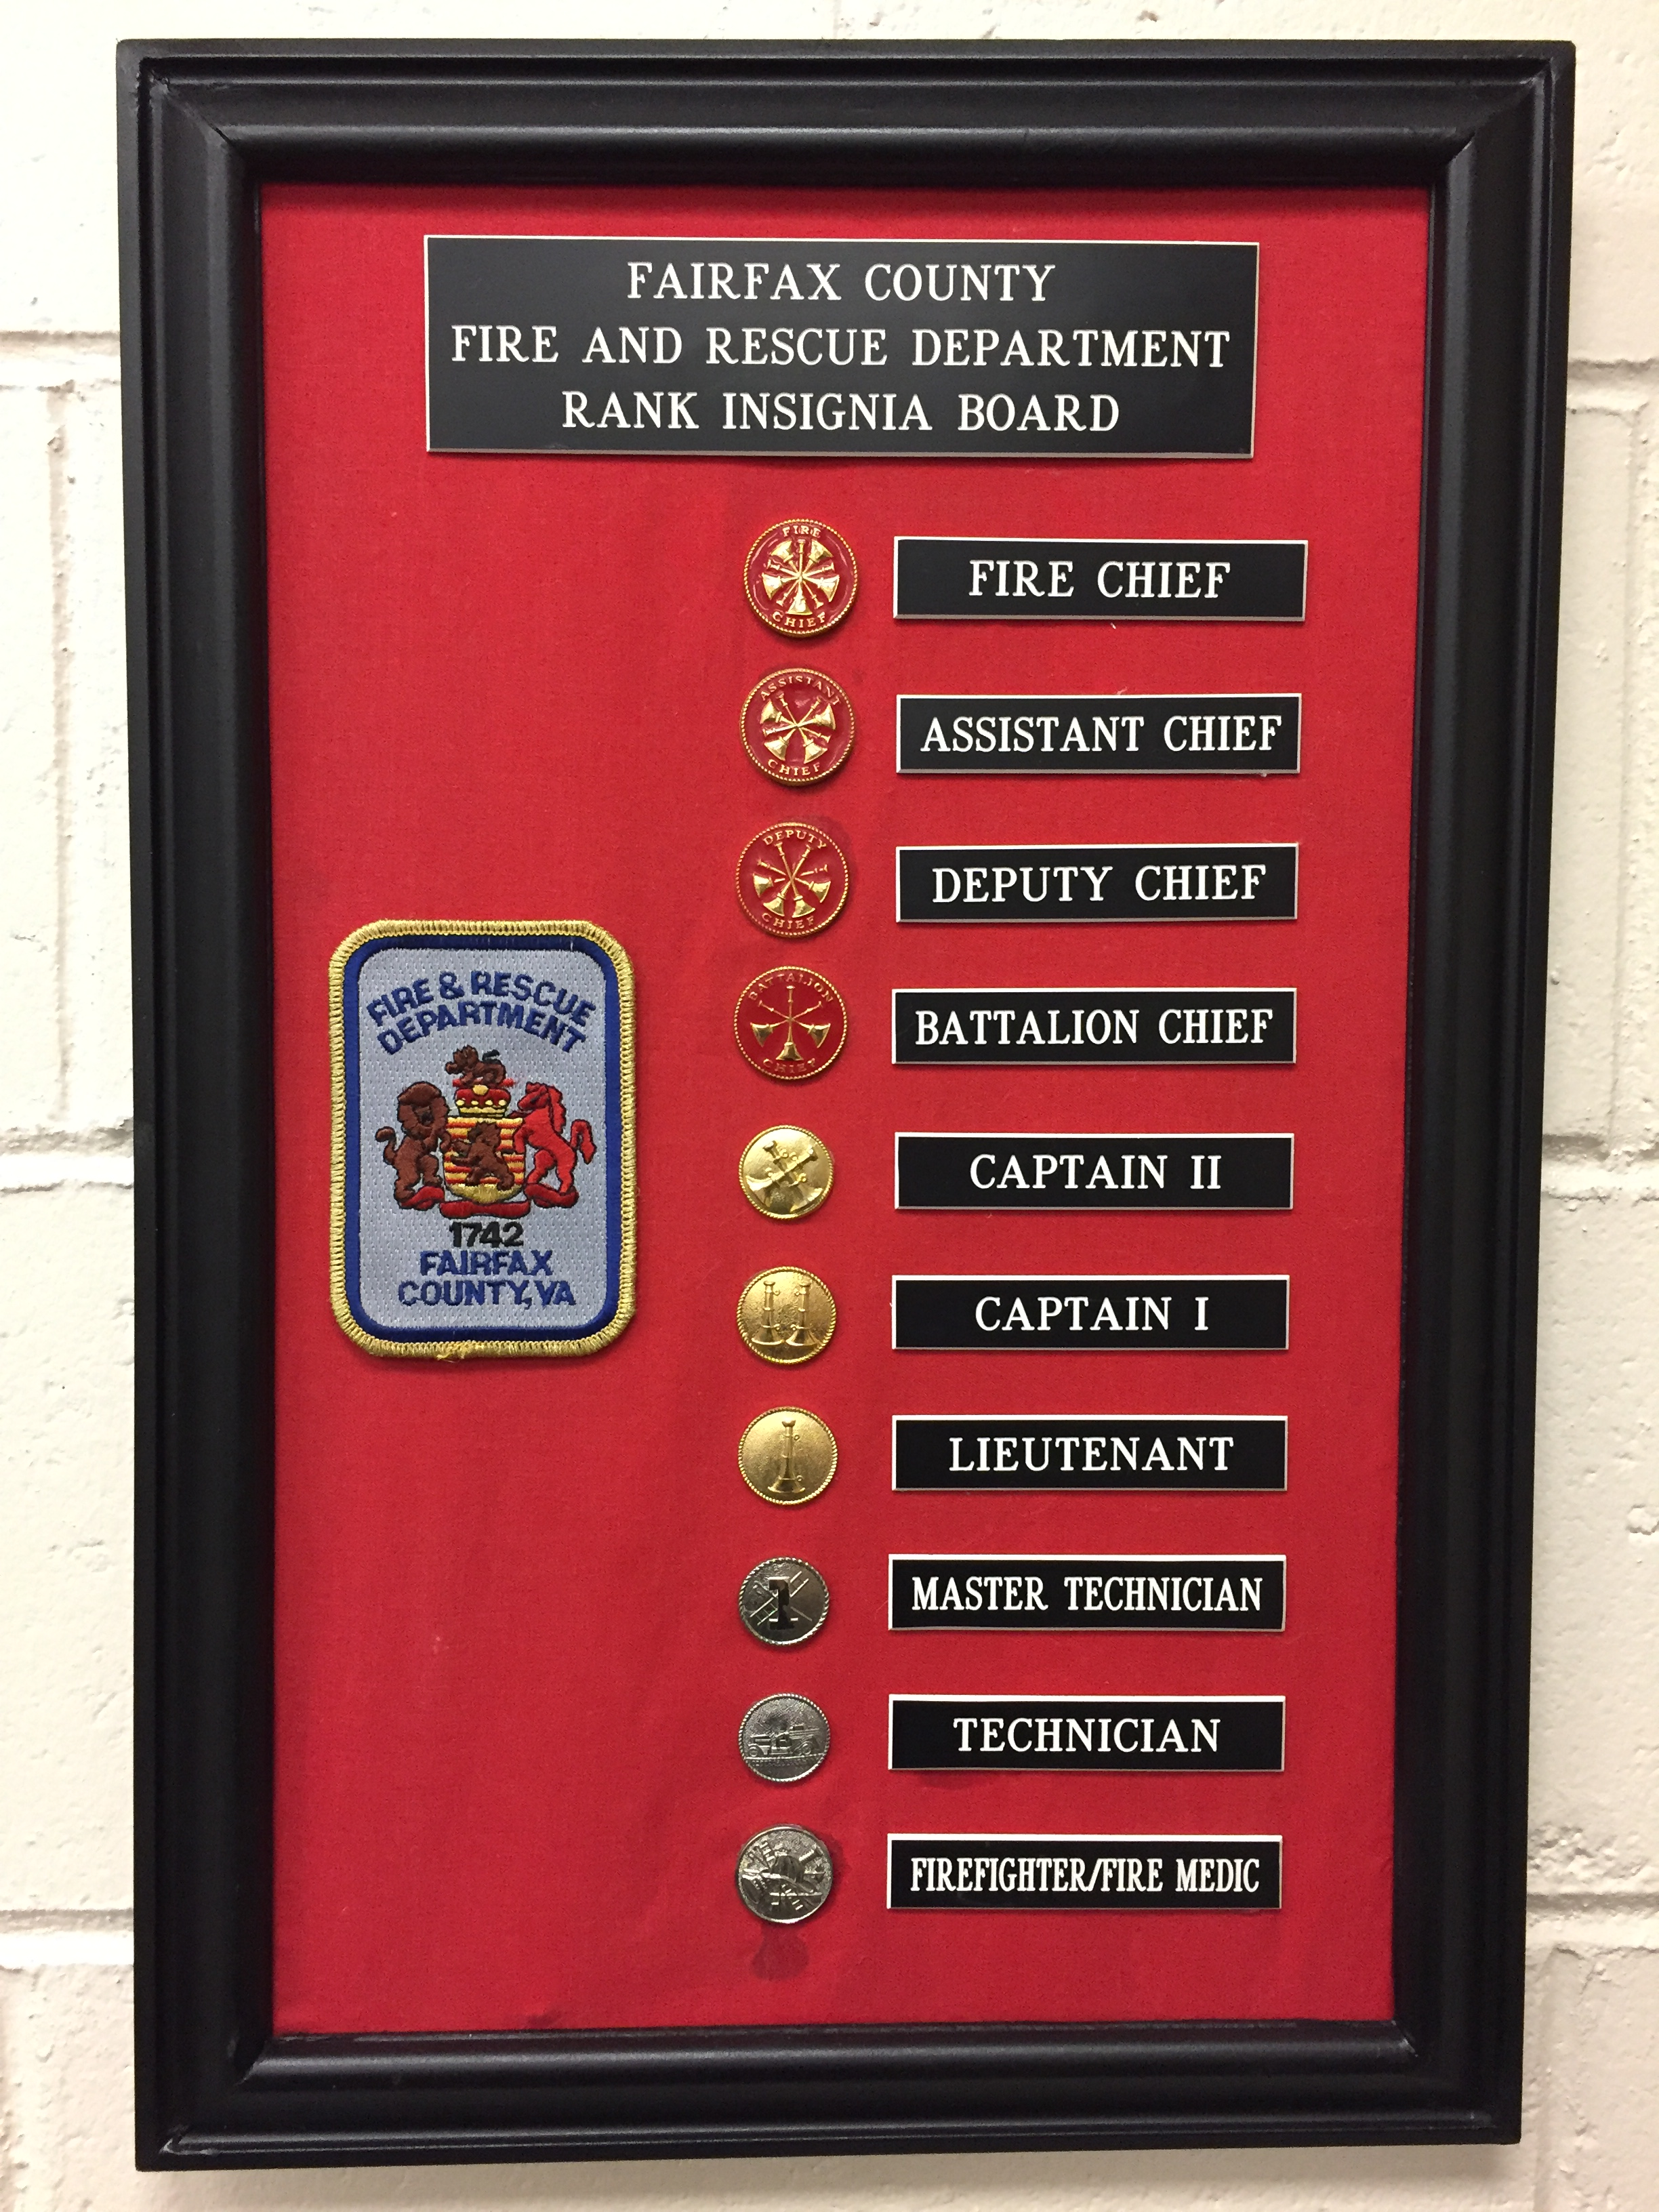 promotions  u2013 fairfax county fire and rescue department